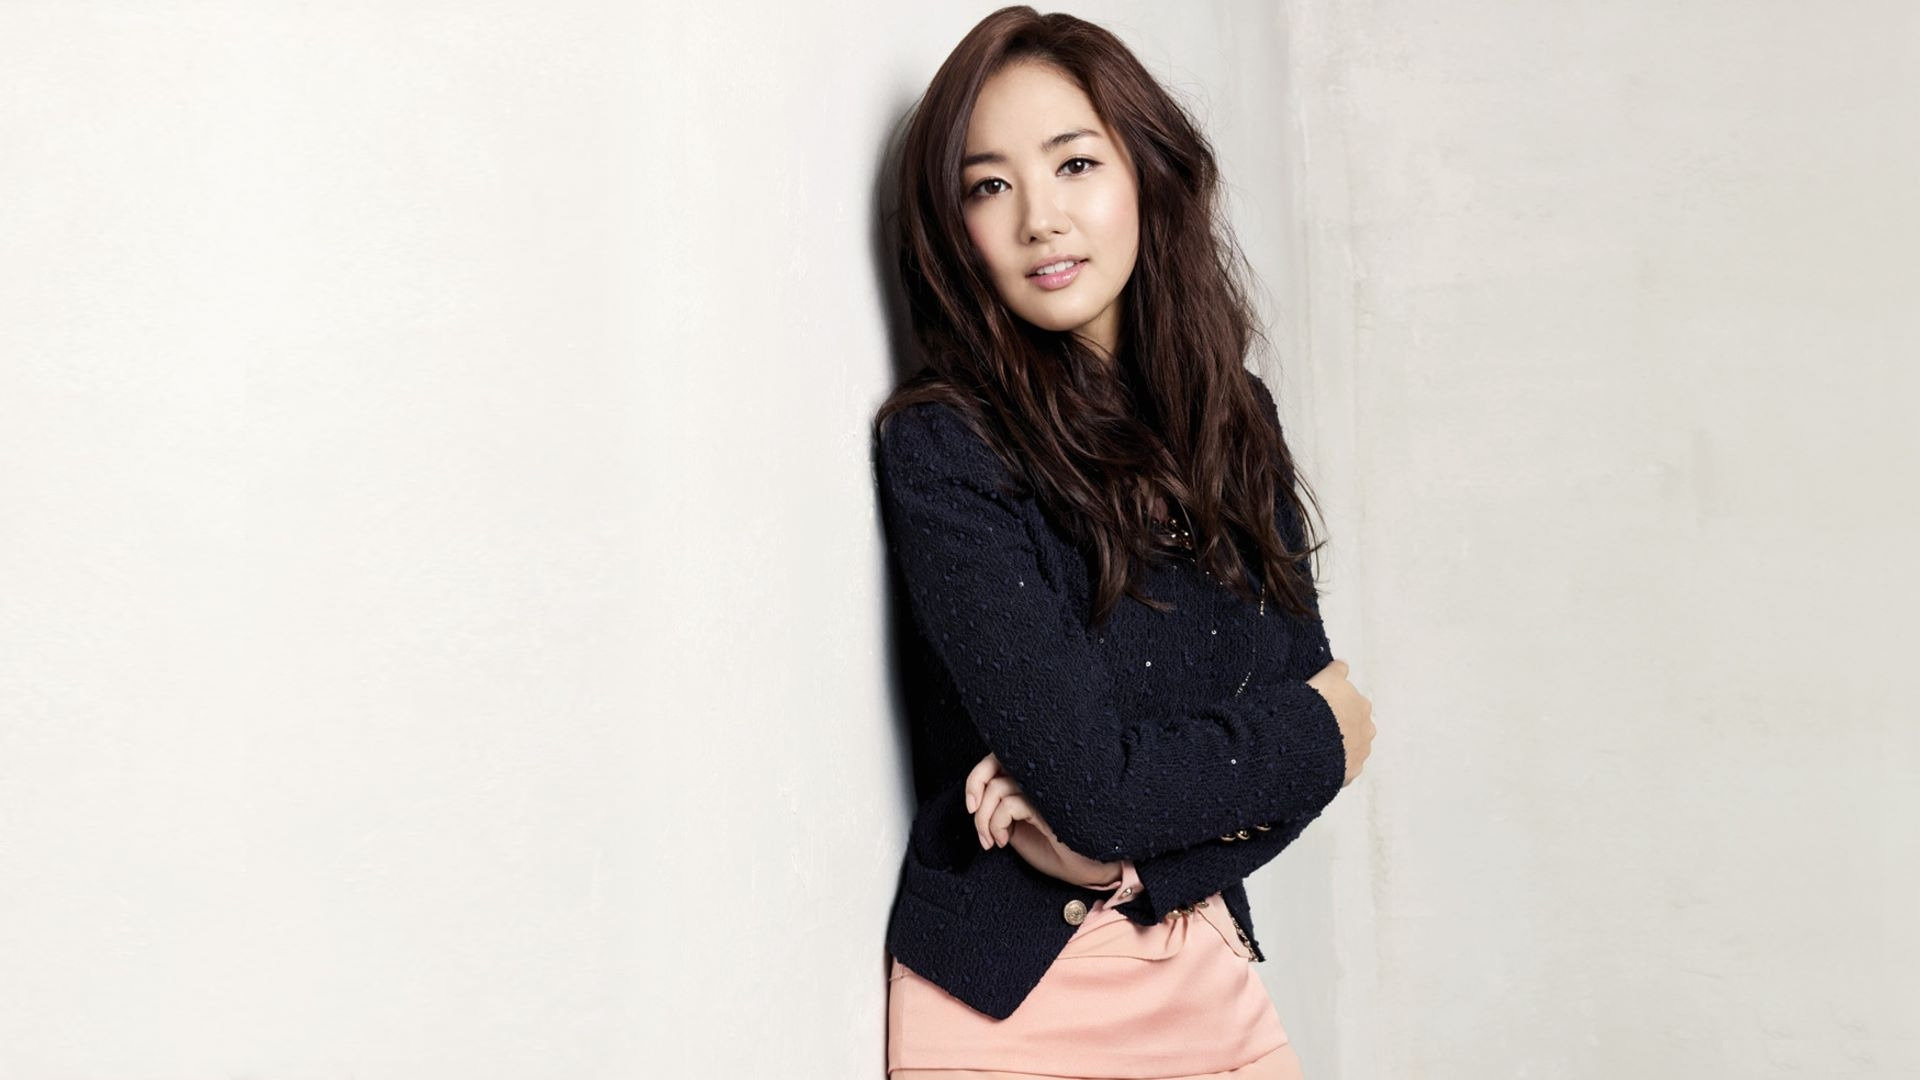 park minyoung wallpapers images photos pictures backgrounds